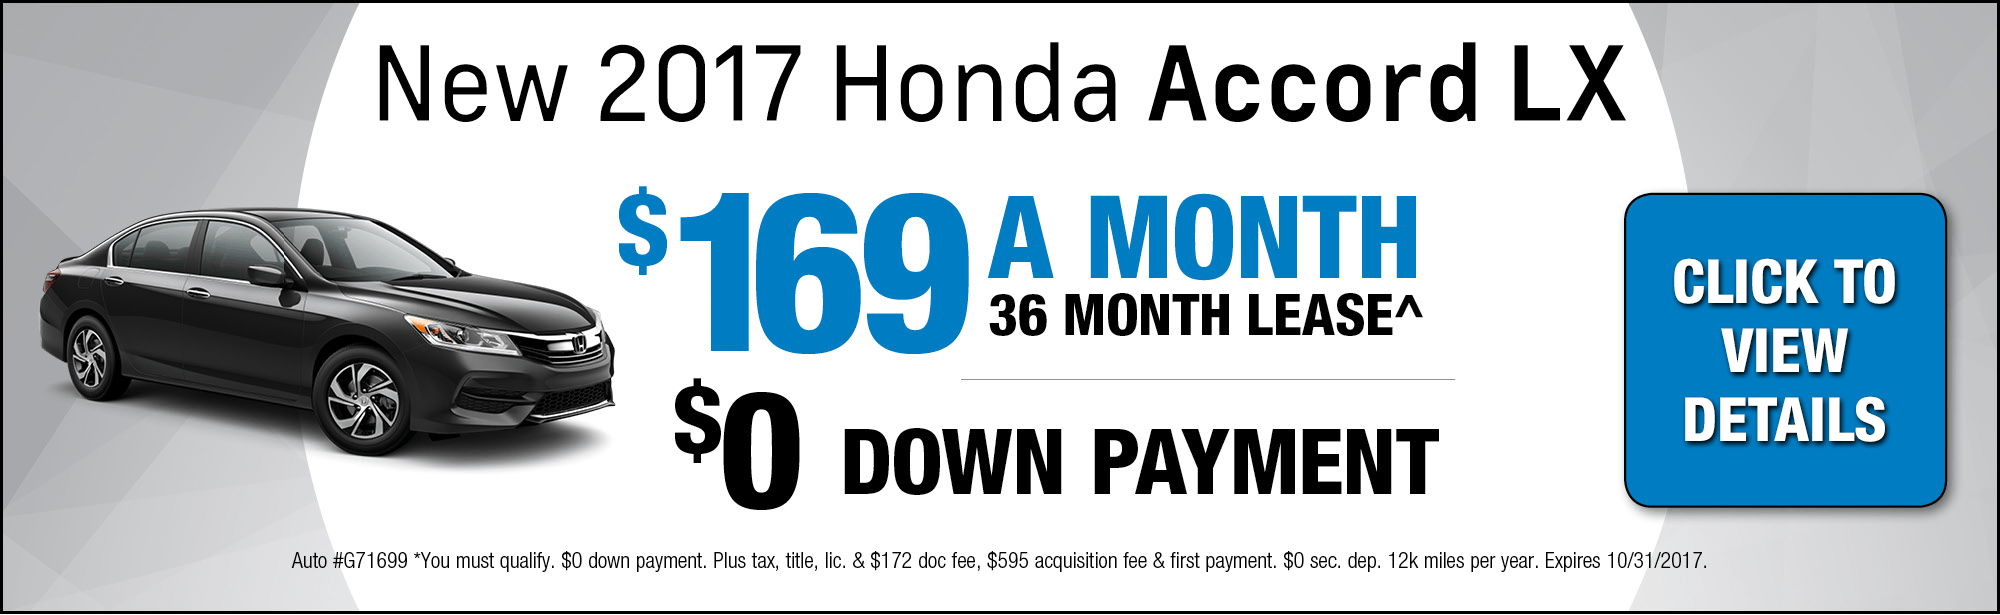 2017 Honda Accord LX Lease Special in Chicago, IL